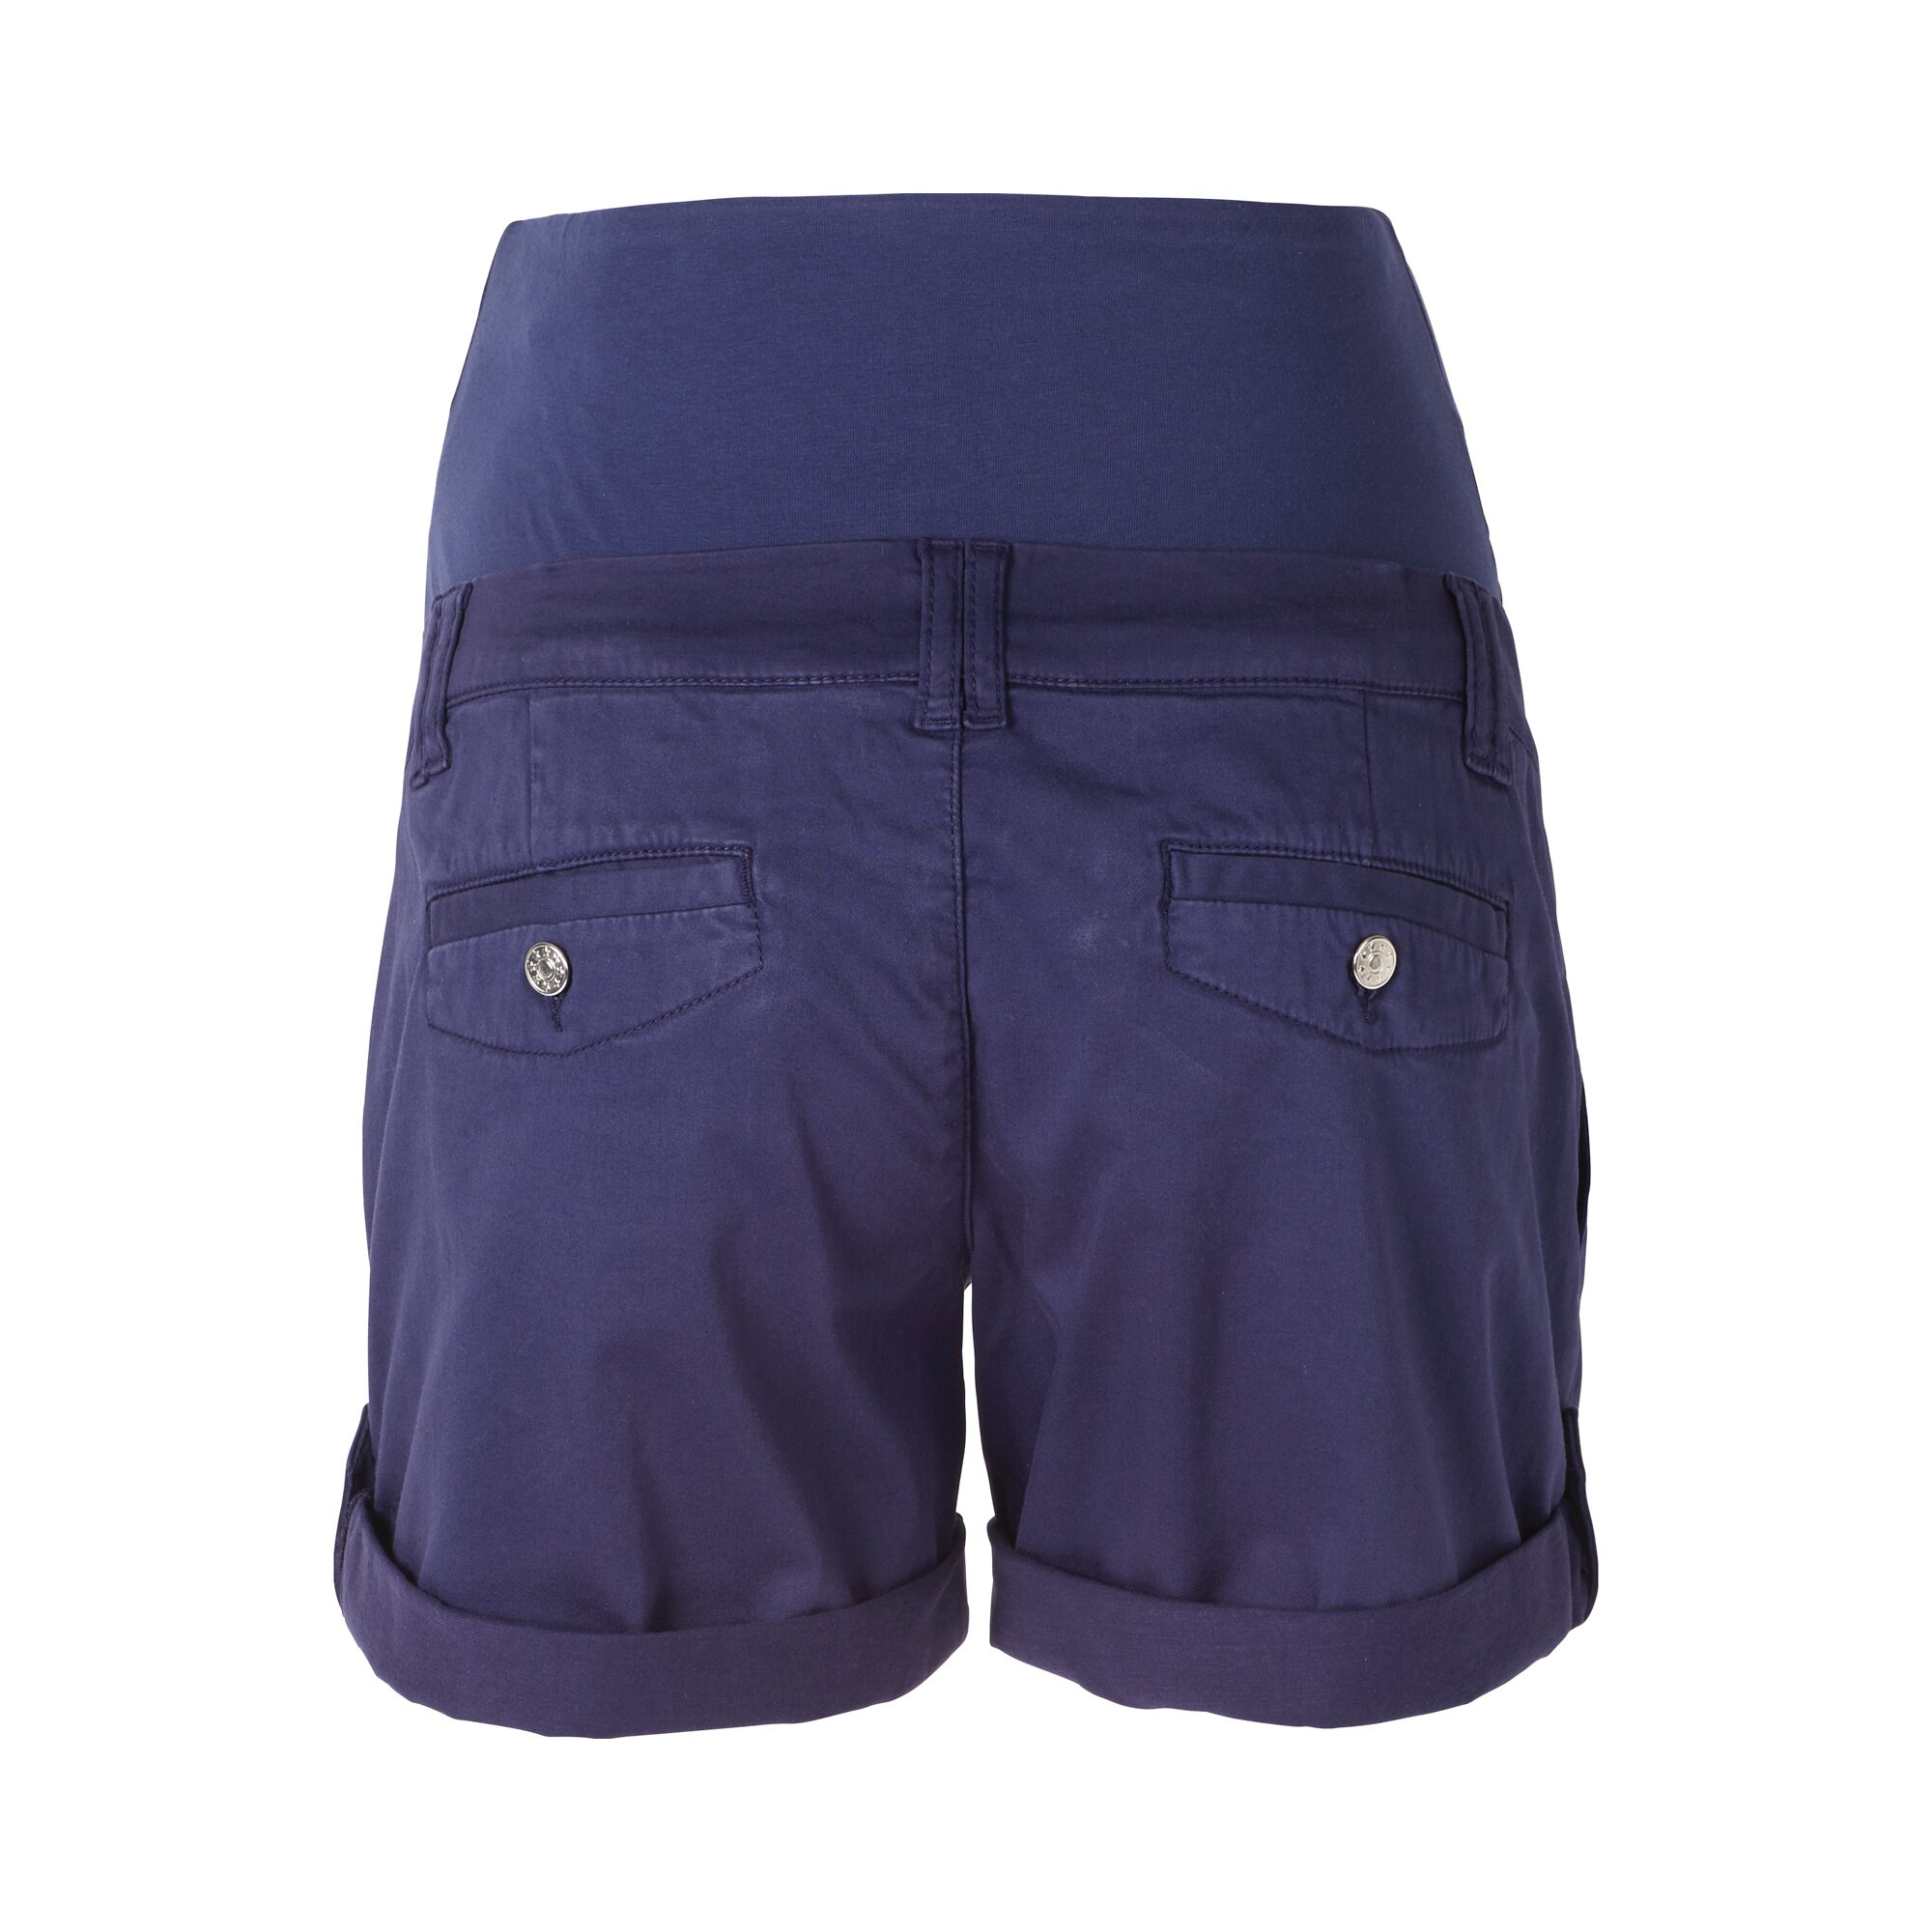 2hearts-umstands-shorts-blau-36-38-40-44-46